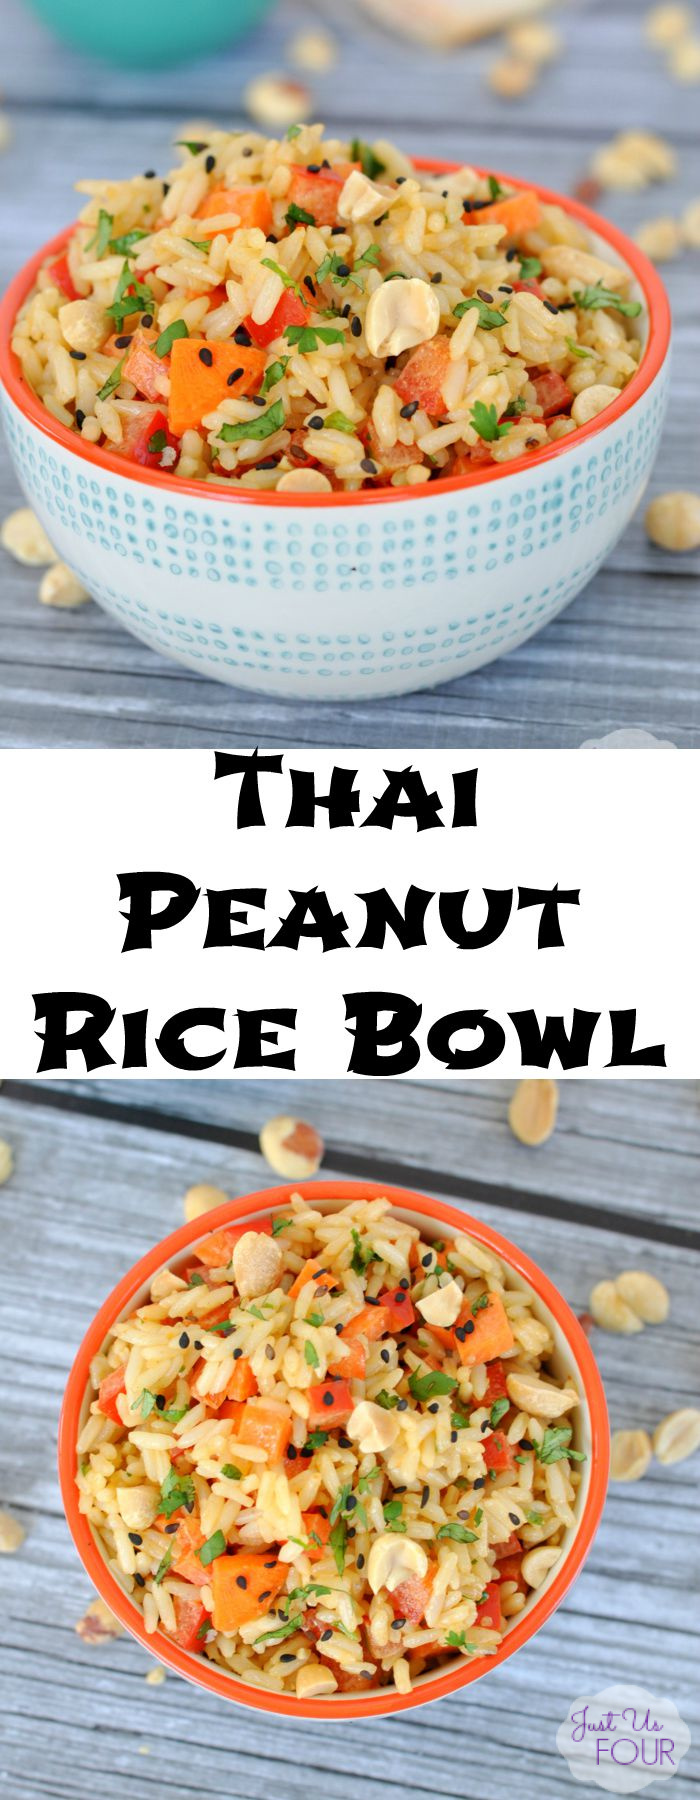 A Thai Peanut Rice bowl is the perfect dinner option when you need something quick and easy but still want it to taste delicious.